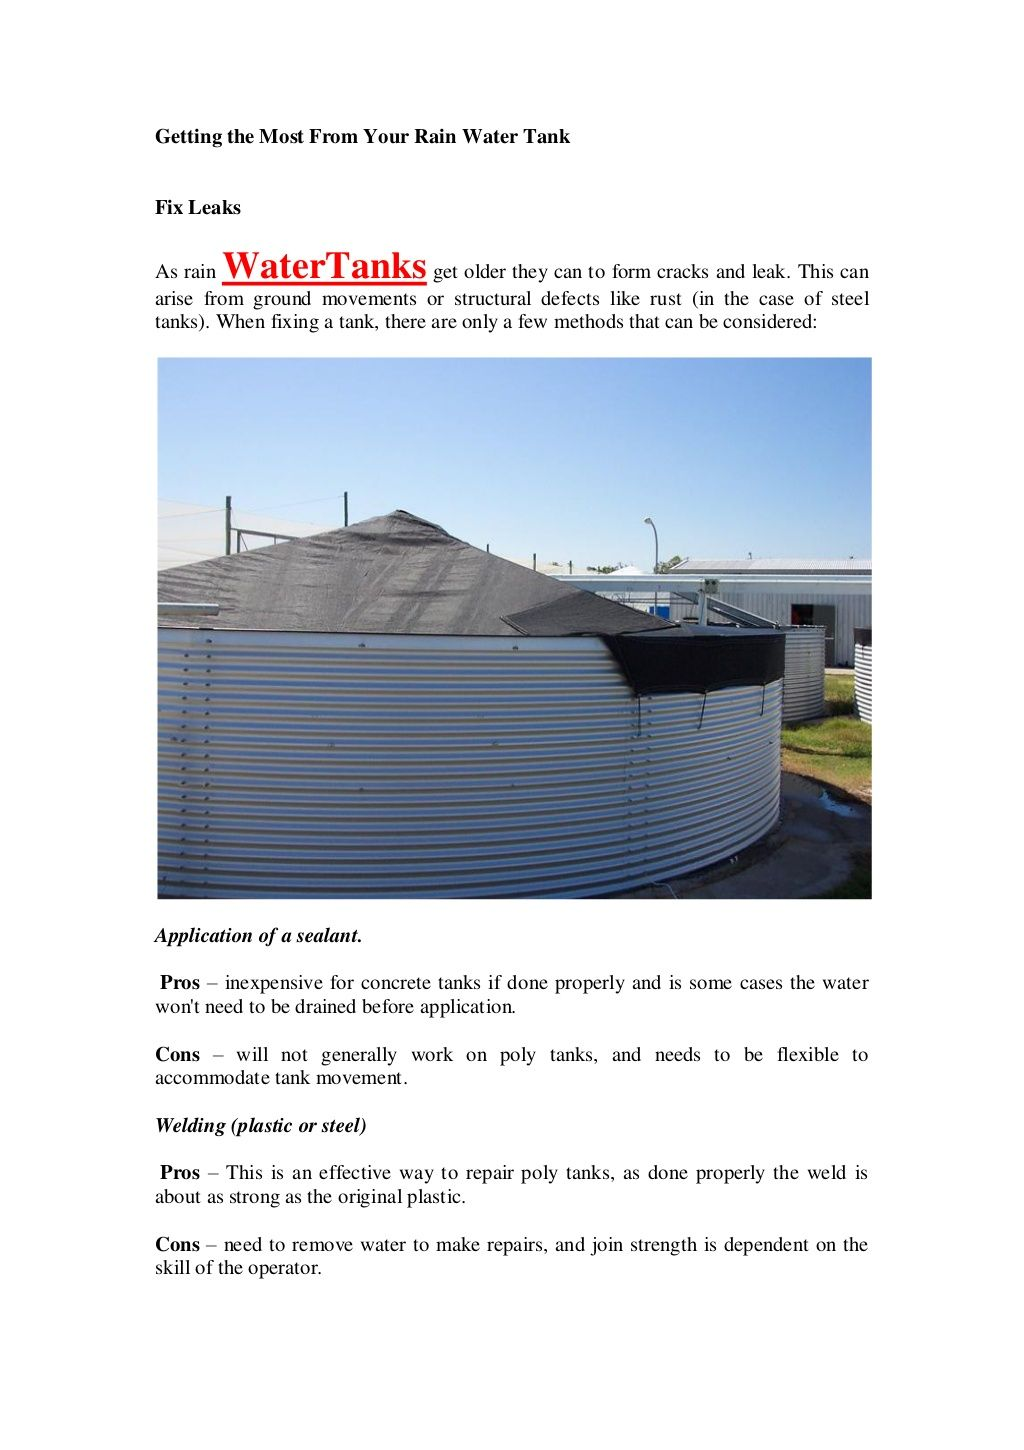 Need to remove water to make repairs, and join strength is dependent on the skill of the operator. For More Update Visit :- http://www.fabricsolutions.com.au